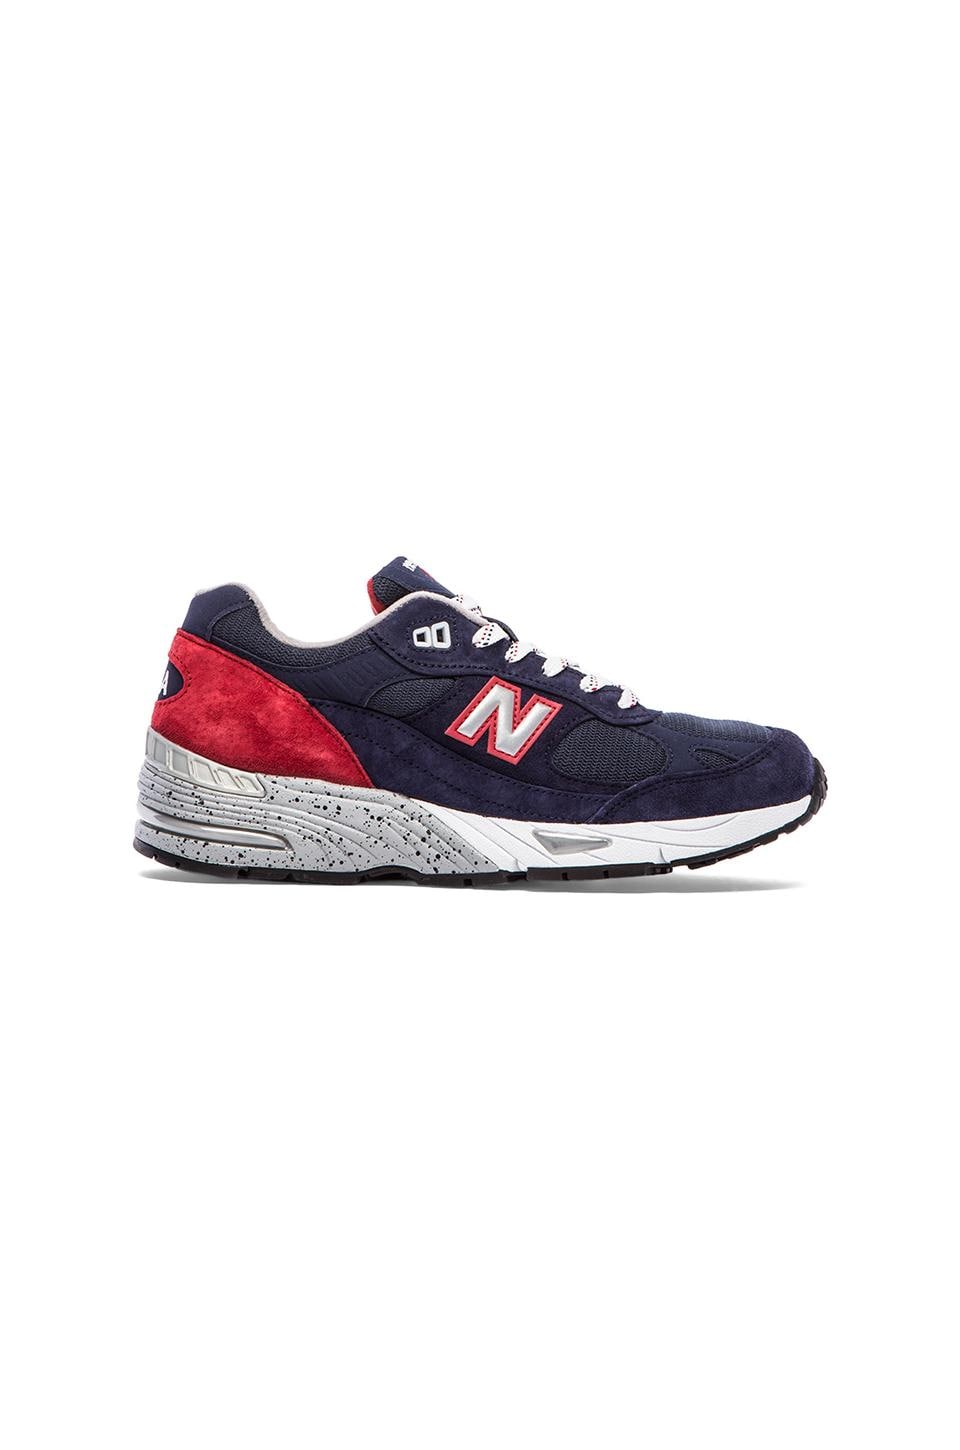 New Balance Made in USA M991 in Navy & Red